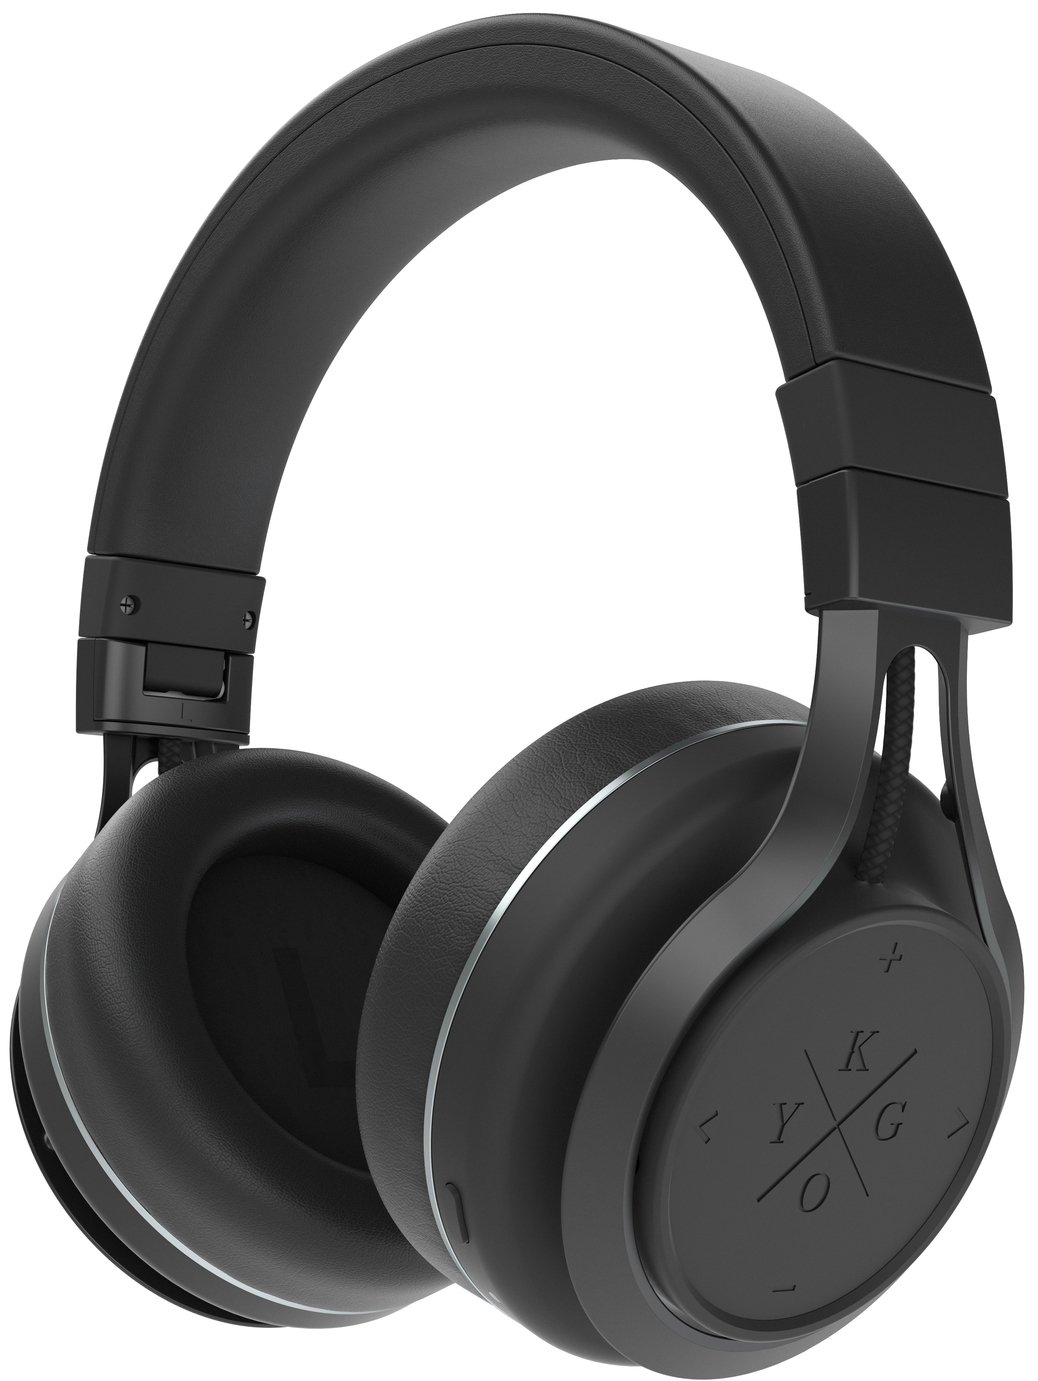 Kygo A9/600 Over-Ear Wireless Headphones - Black